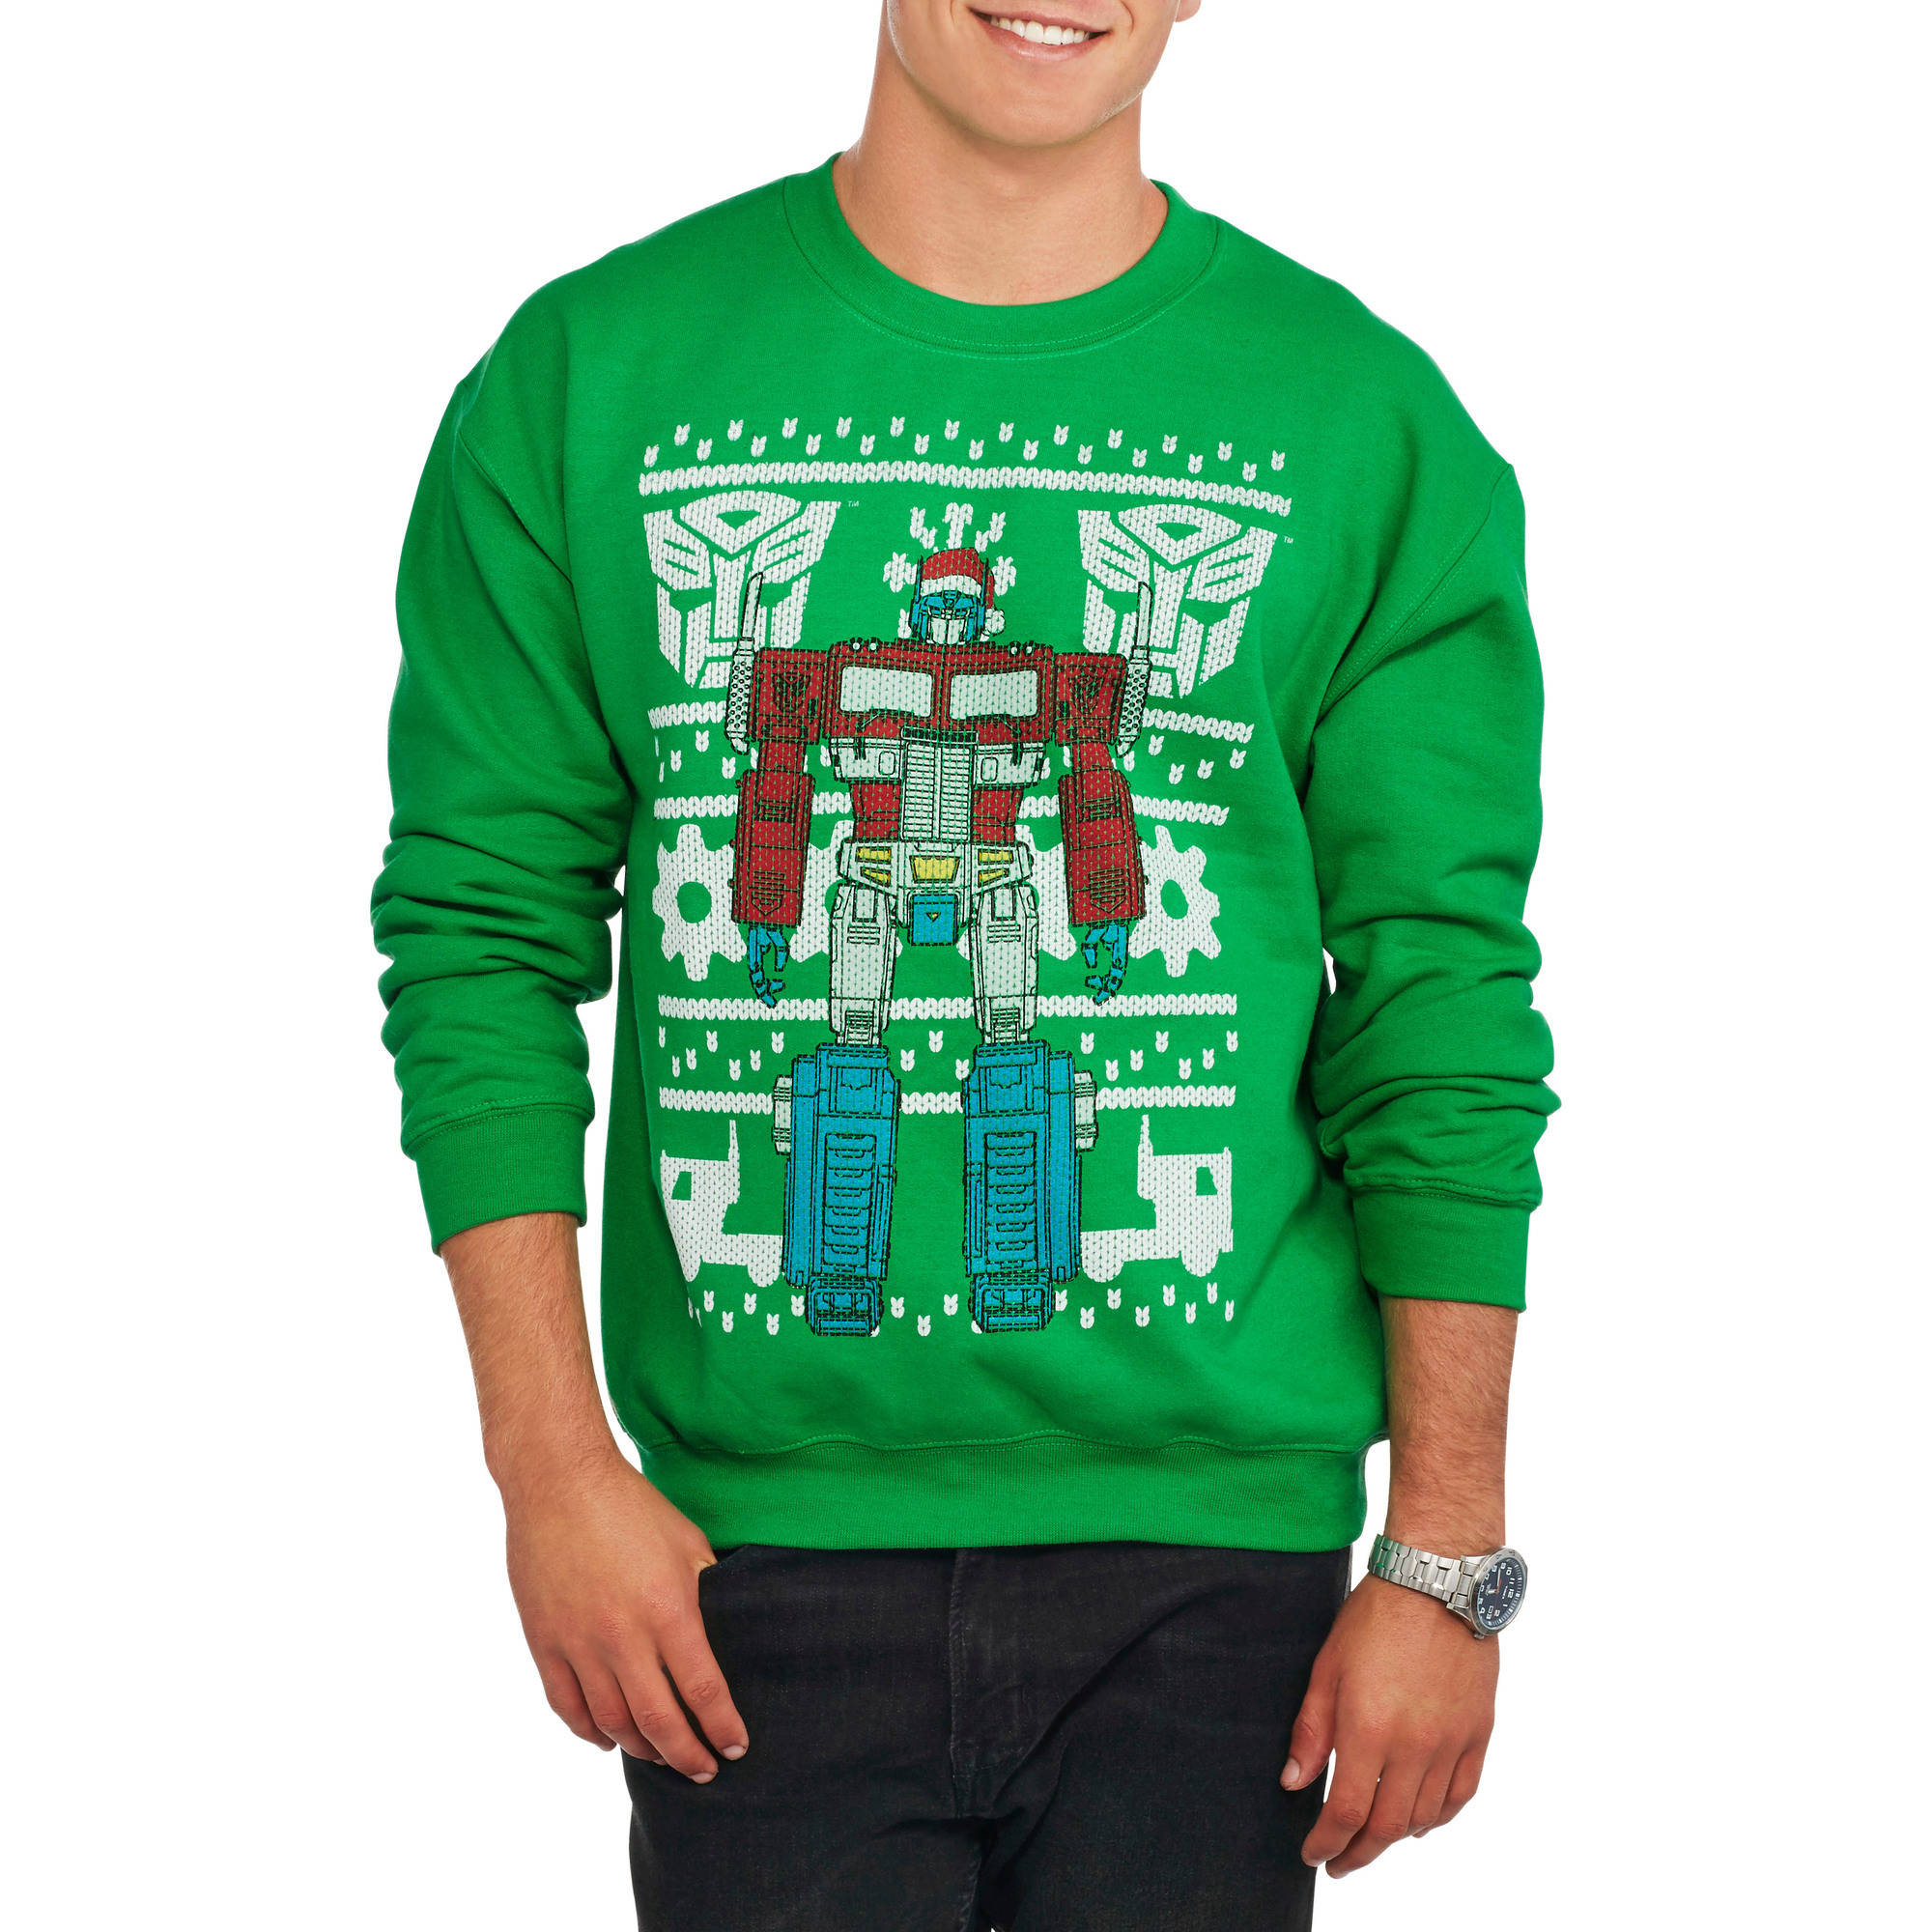 Transformers Autobots Optimus Prime Ugly Christmas Sweater Men's Crew Neck Graphic Sweatshirt